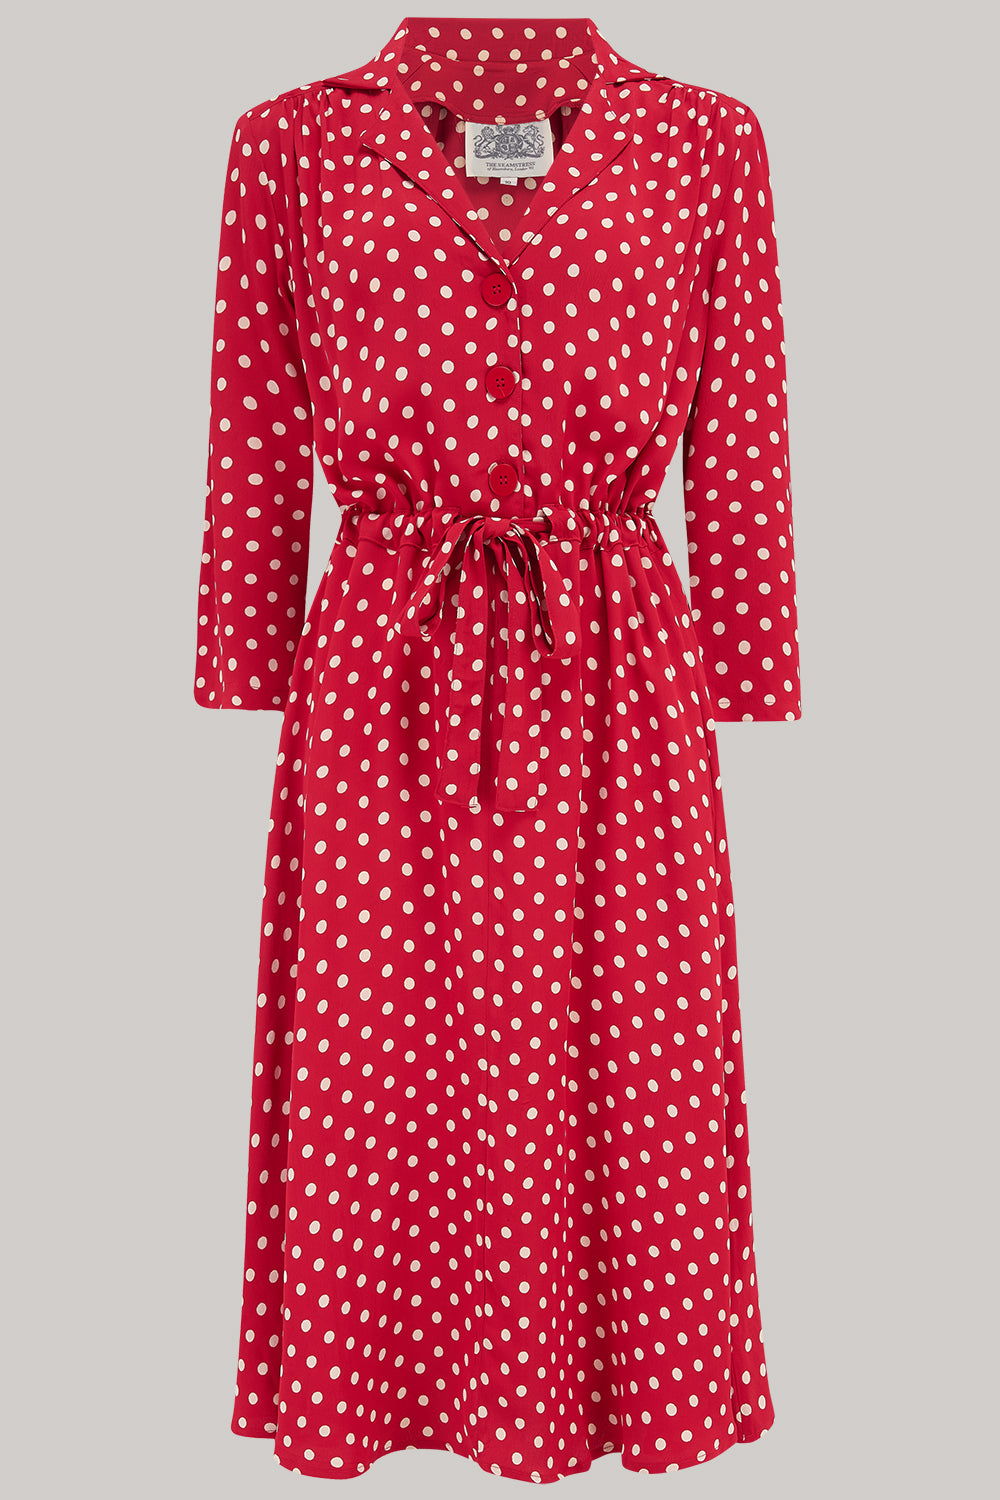 1950s Style Clothing & Fashion Milly dress in Red Polka  A Classic 1940s Inspired Day dress True Vintage Style £79.00 AT vintagedancer.com